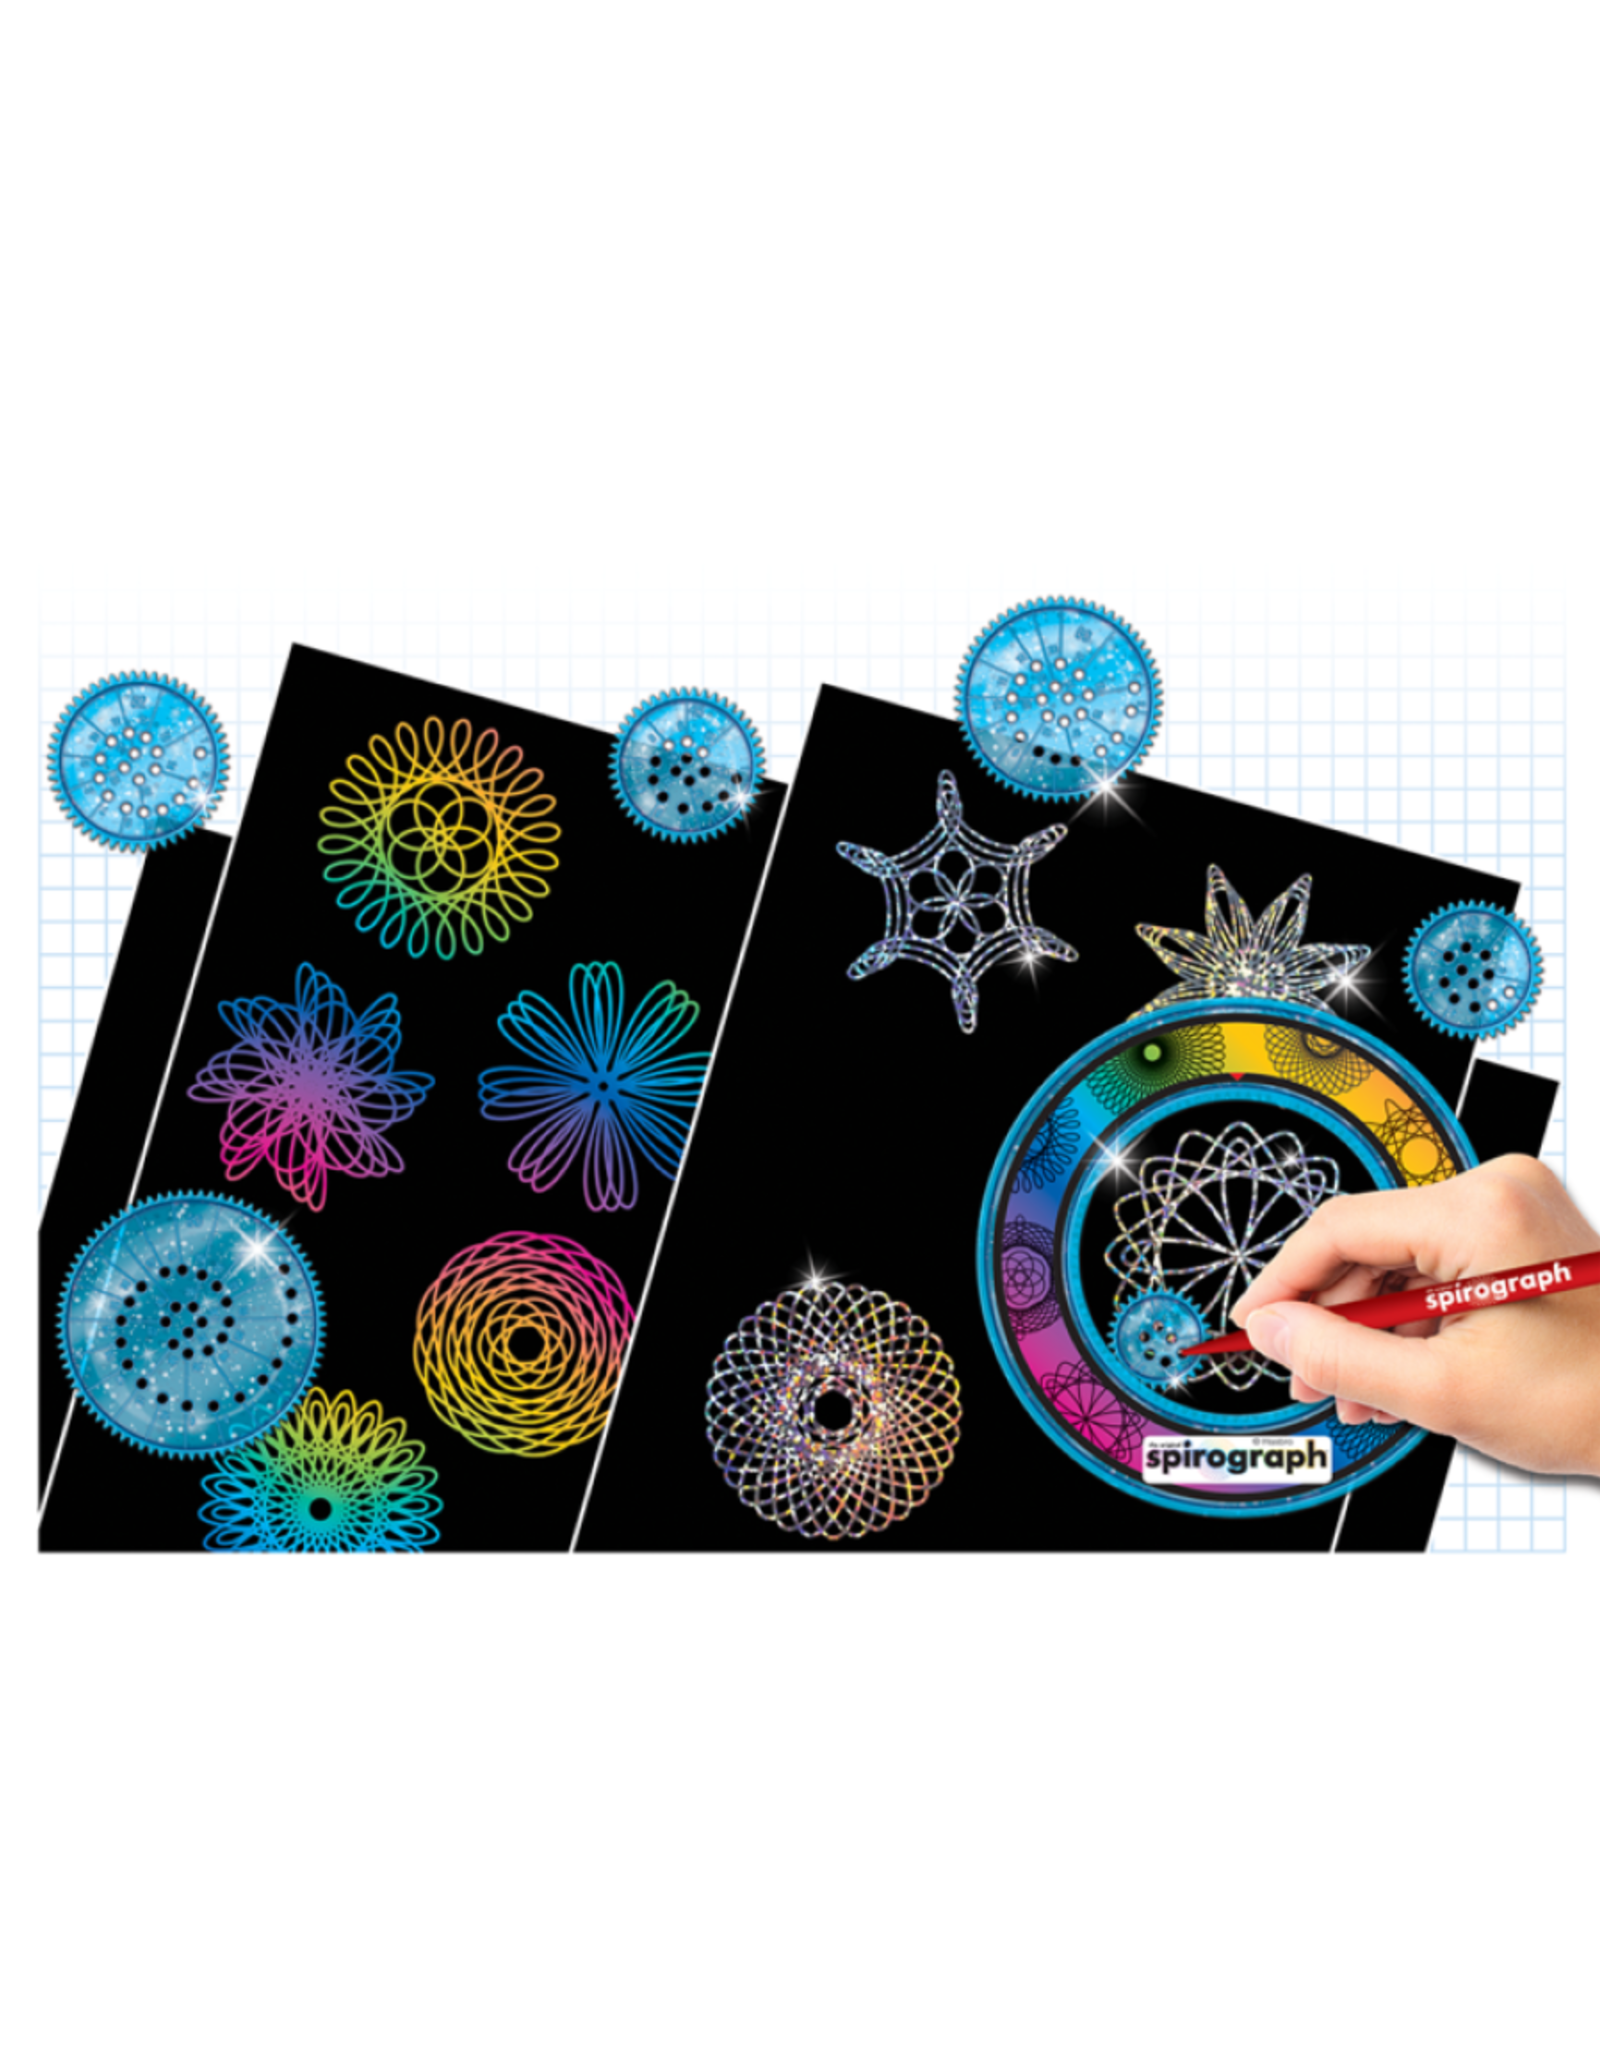 Spirograph Spriograph Scratch and Sparkle